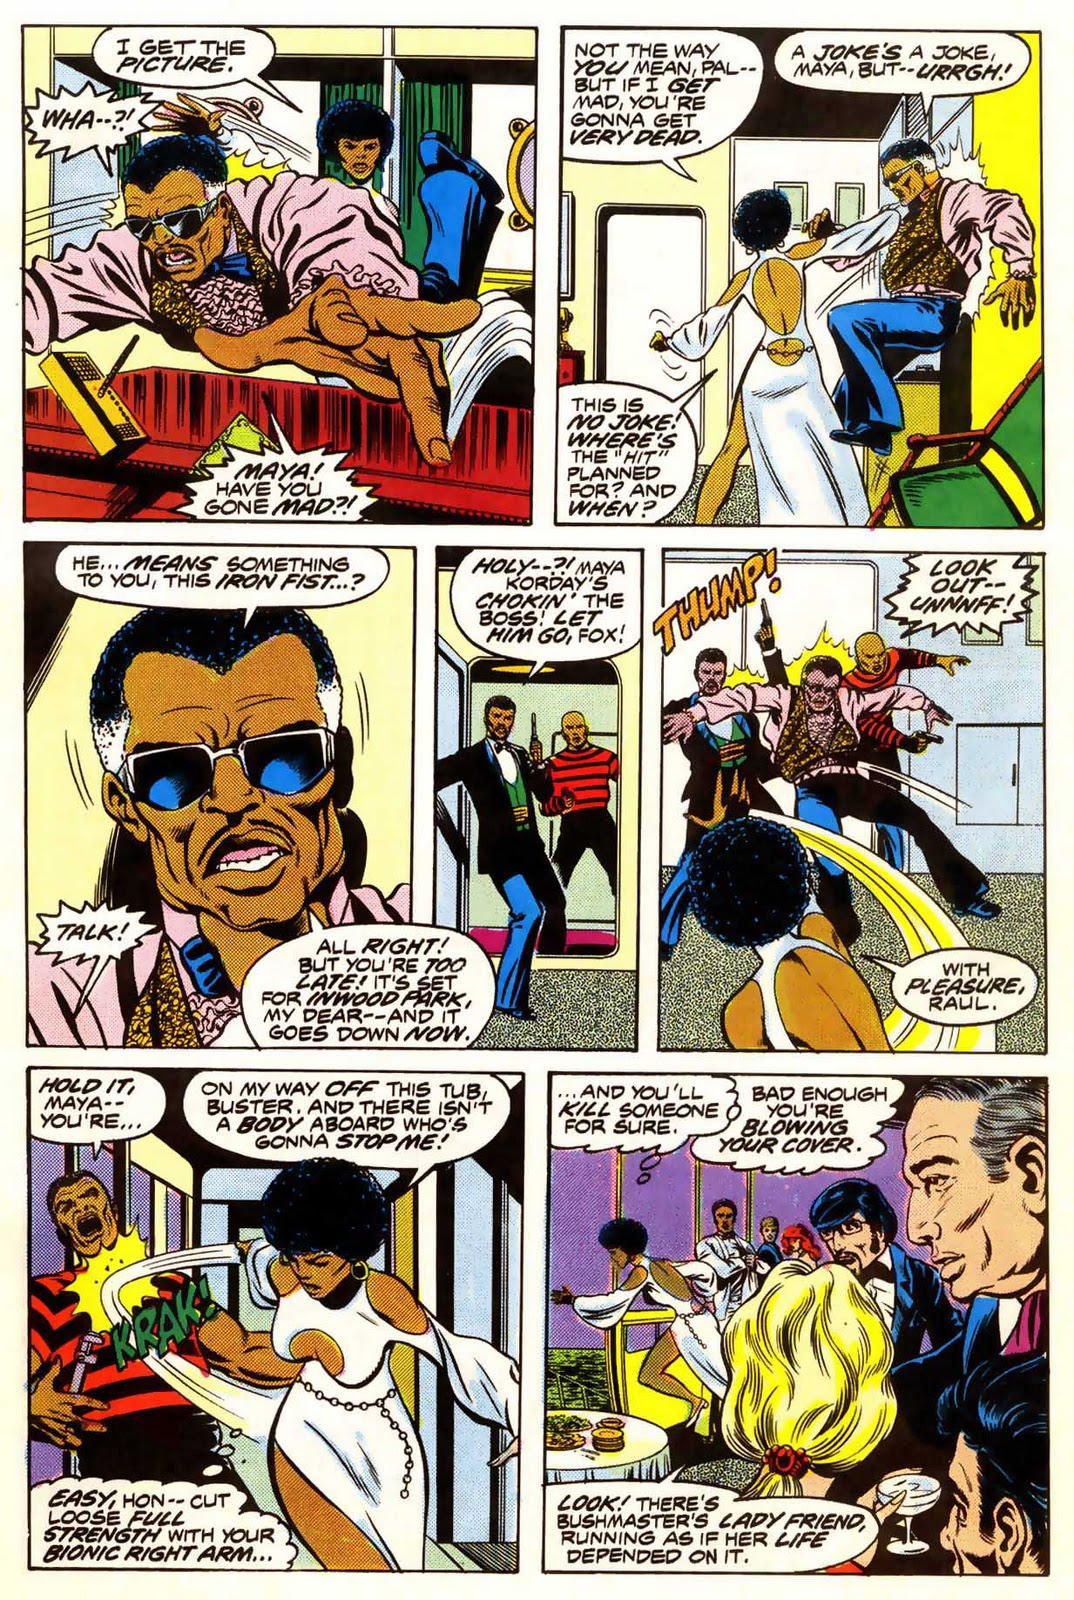 Out Of This World: Early Black Comic Book Heroes: Misty